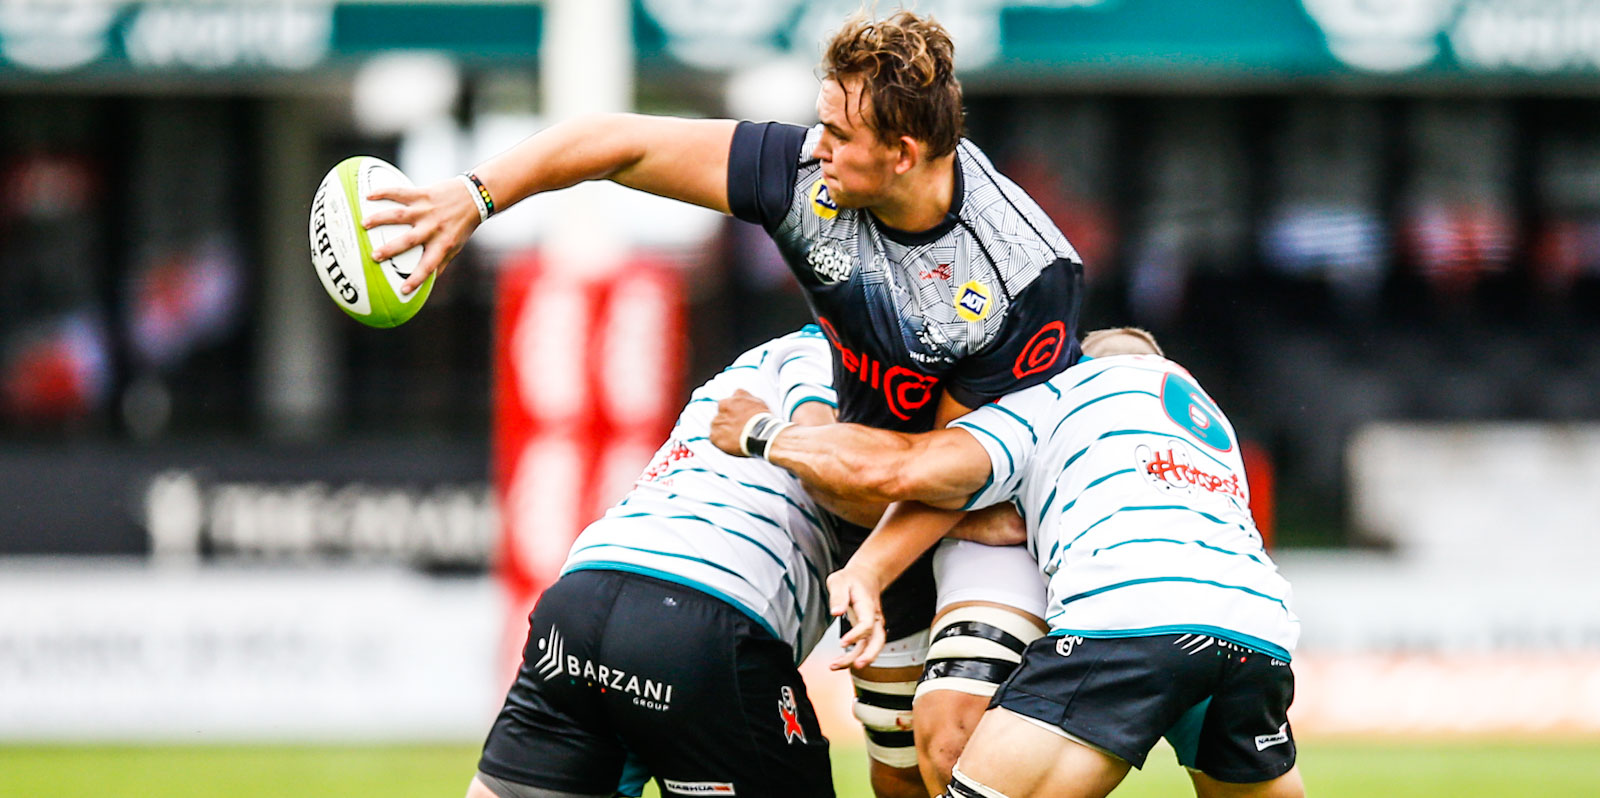 JJ van der Mescht gets the ball away for the Cell C Sharks in their match against Tafel Lager Griquas.